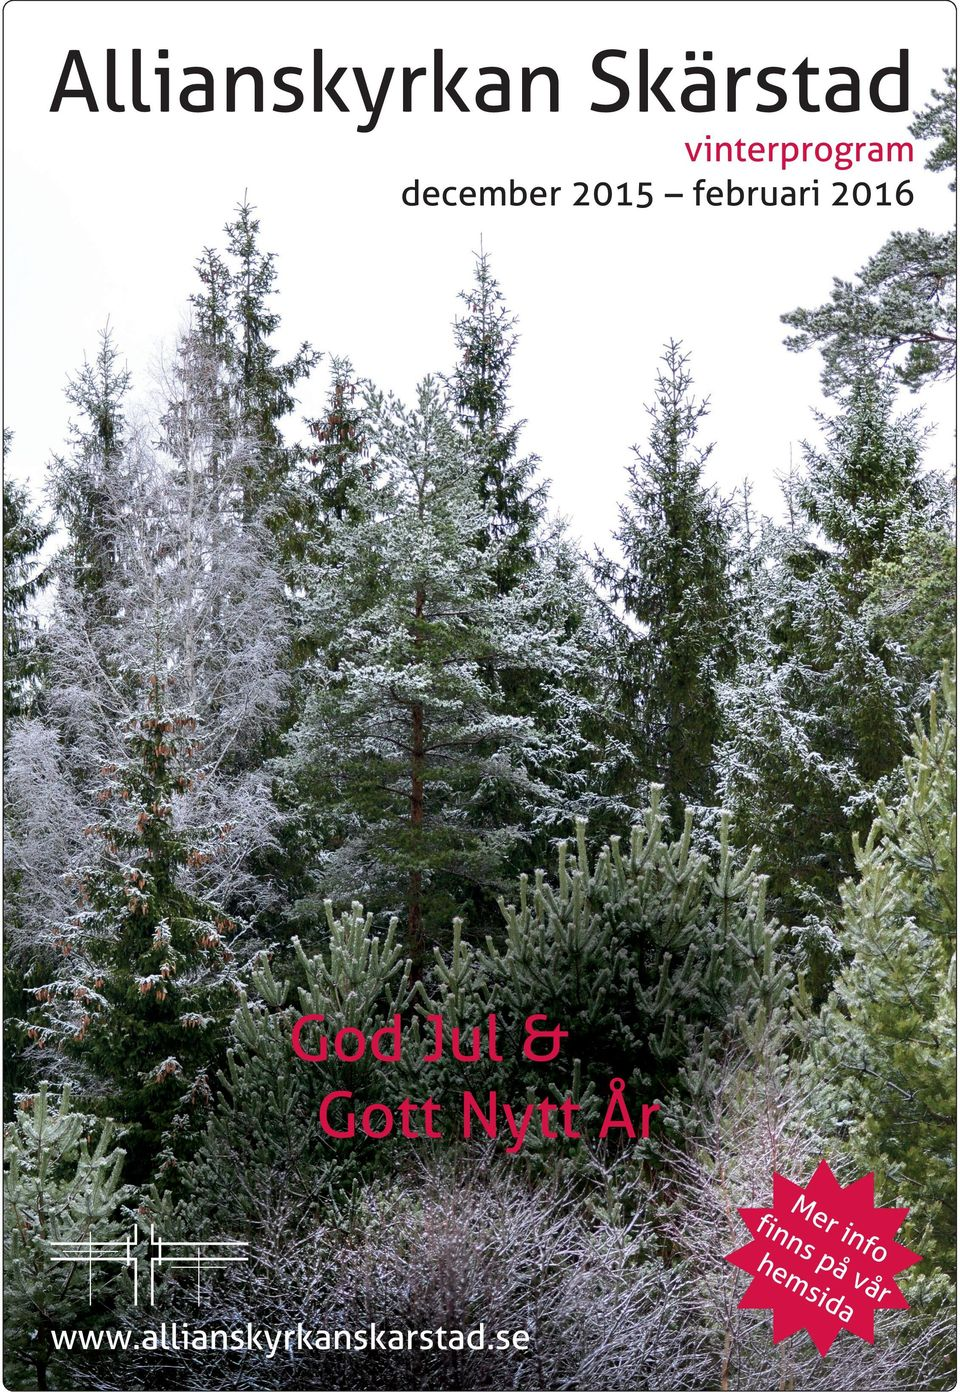 februari 2016 God Jul & Gott